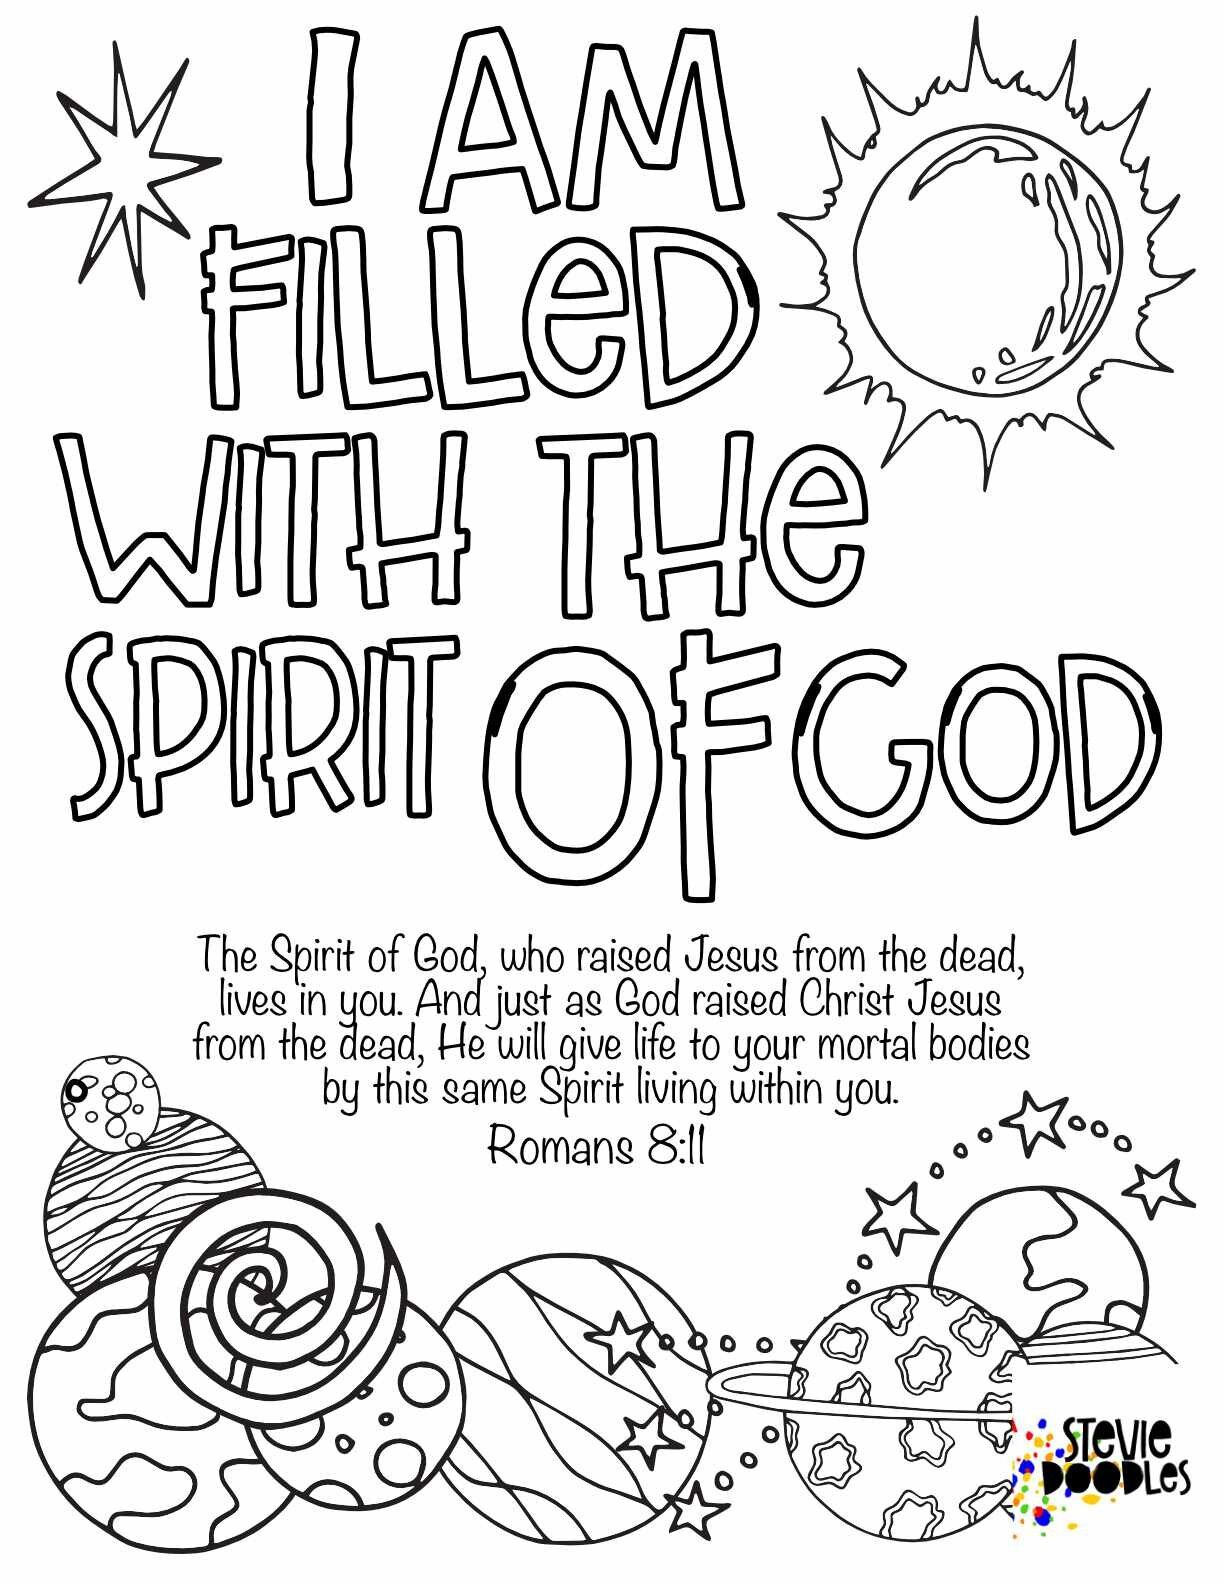 4 Free Identity In Christ Coloring Pages Free To Print And Color Stevie Doodles Free Coloring Pages Coloring Pages Coloring Pages For Teenagers